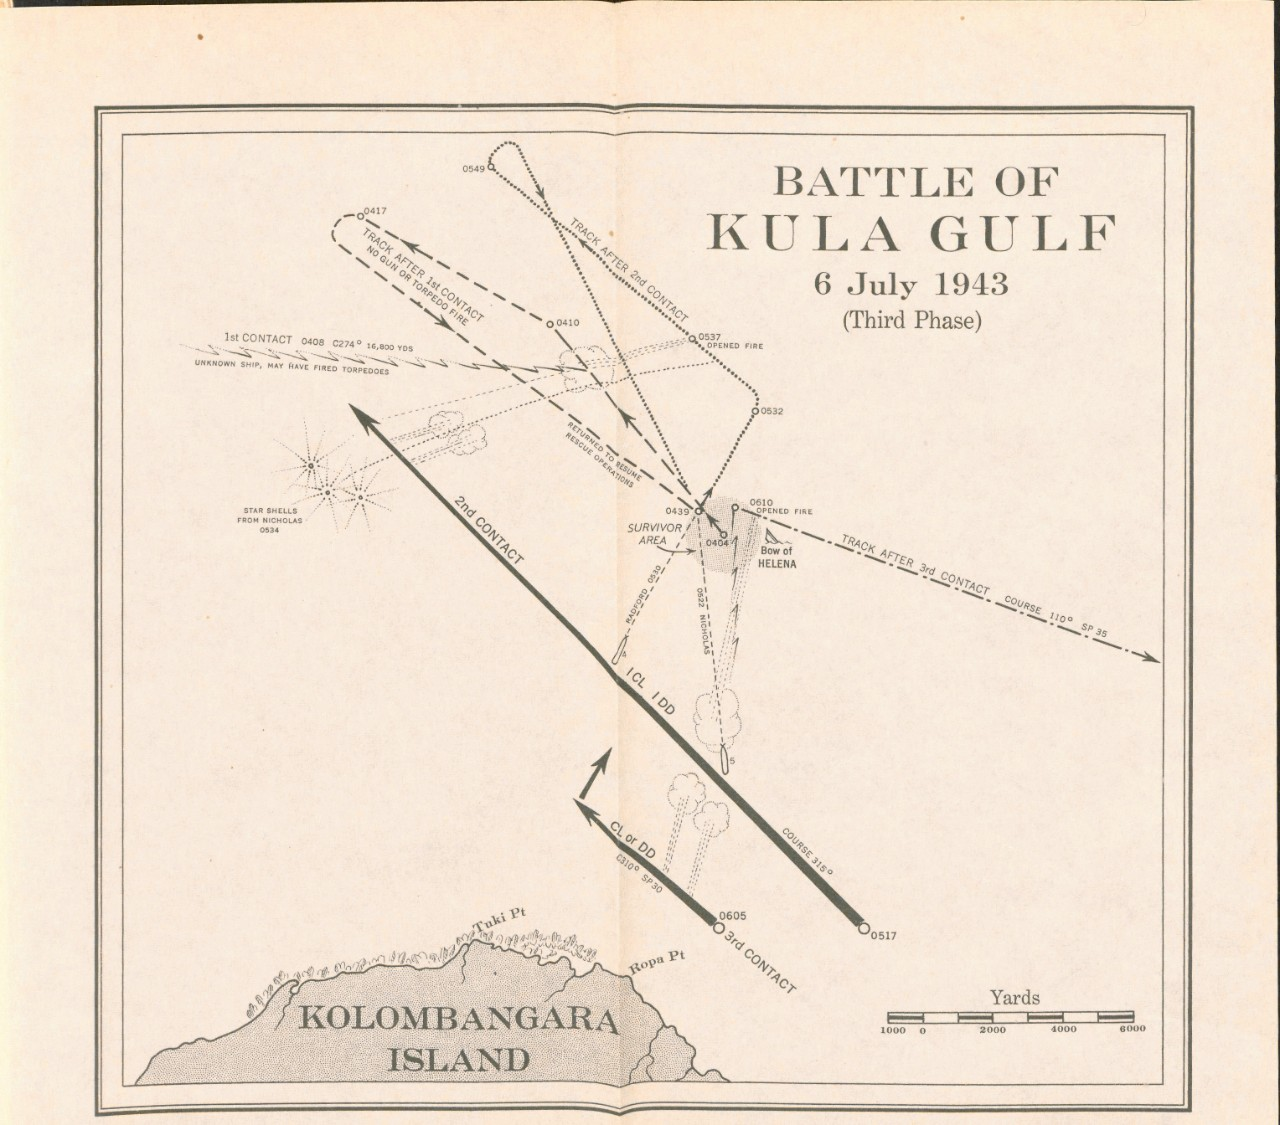 Battle of Kula Gulf 6 July 1943